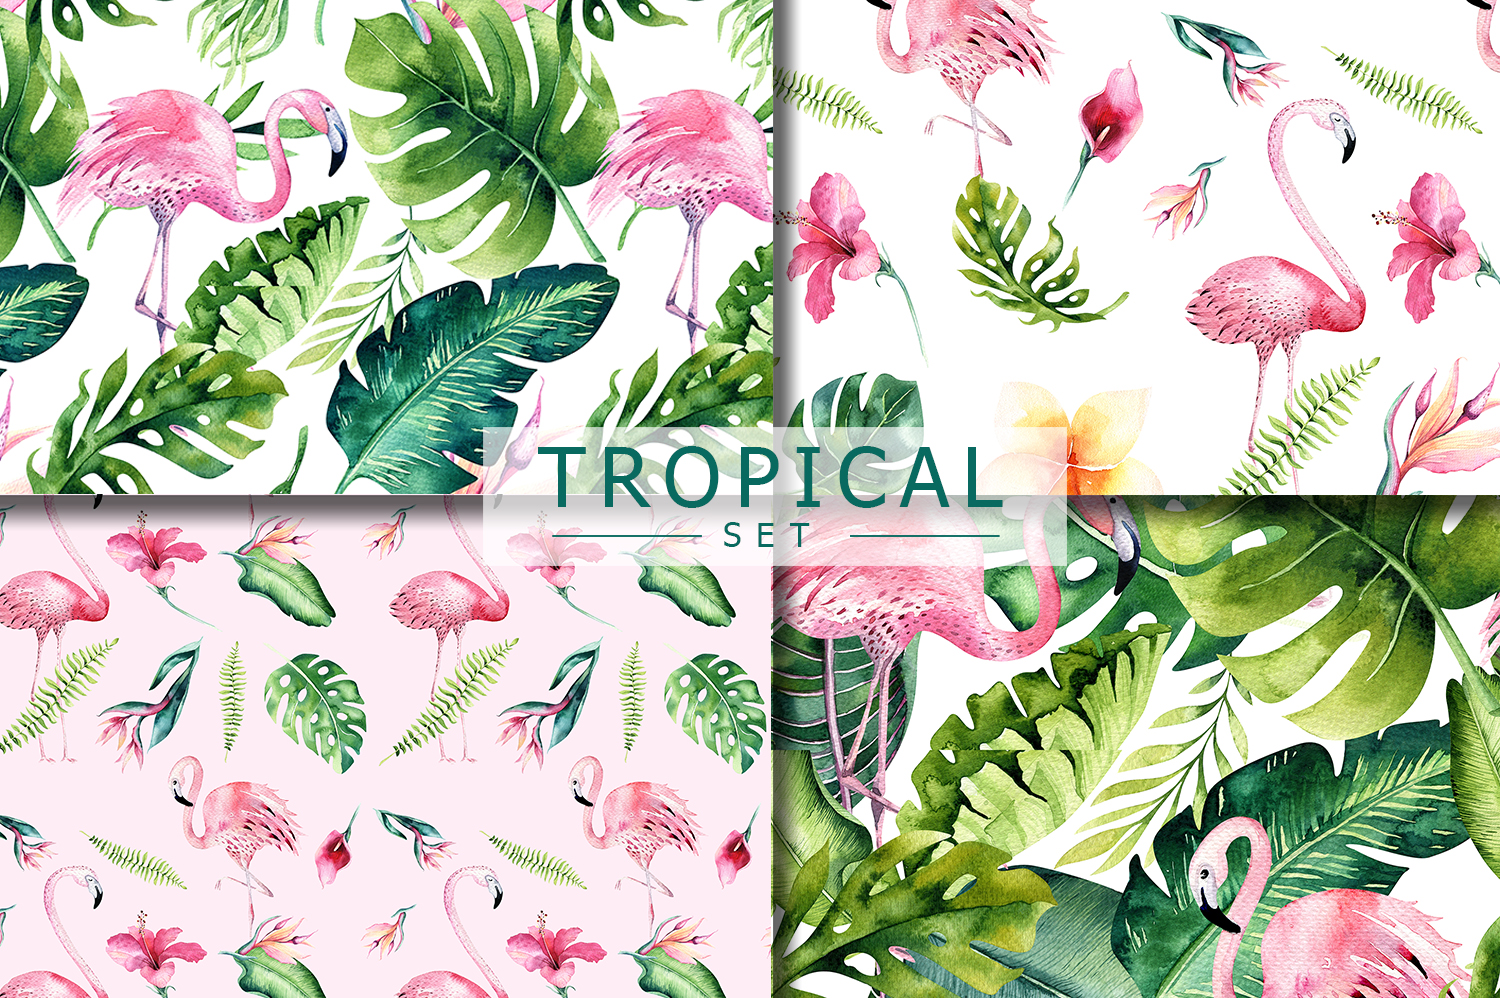 Tropical set II. Flamingo collection example image 5